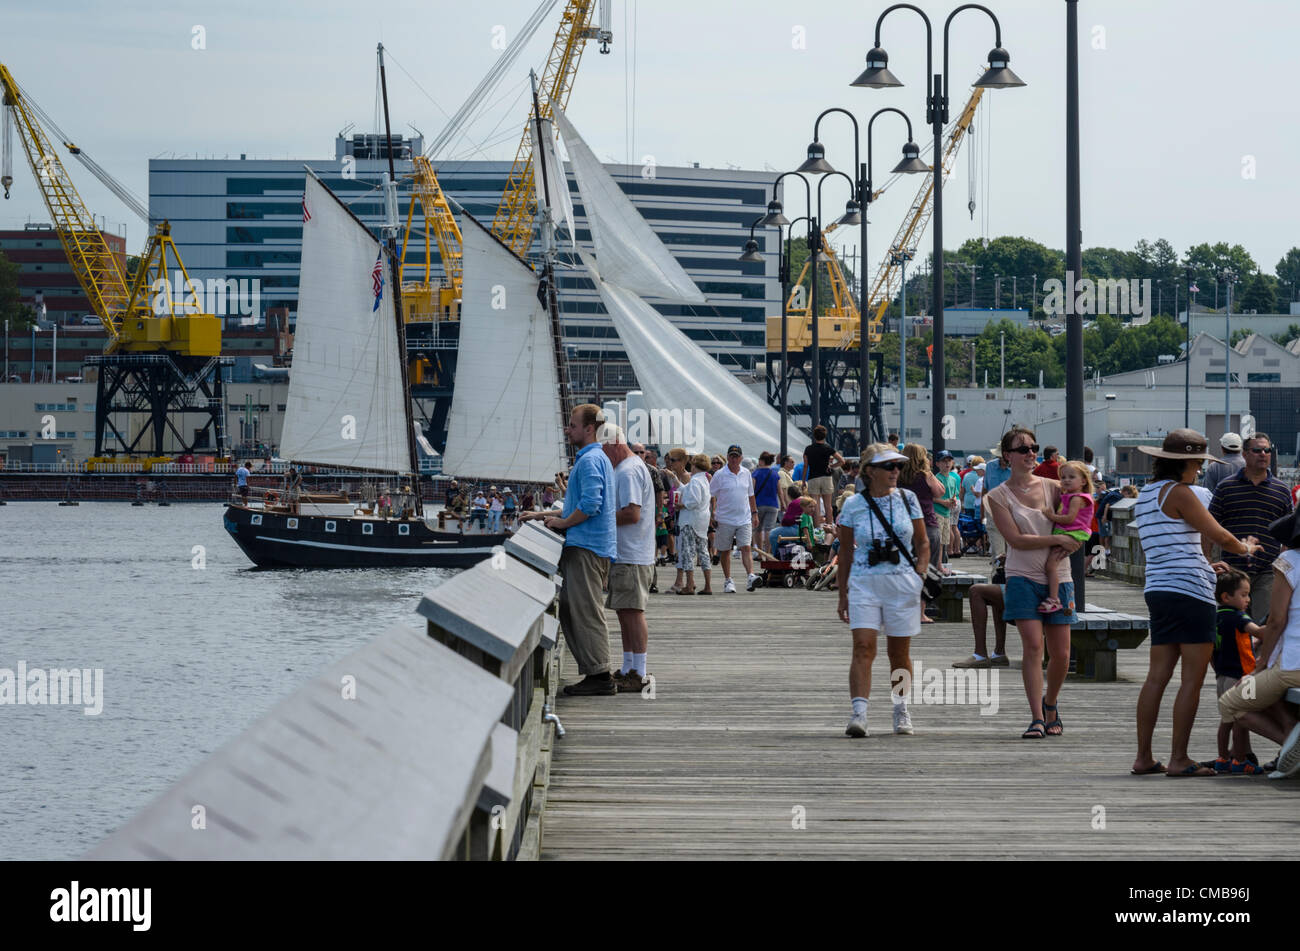 new-london-connecticut-usa-july-9-2012-crowds-gather-to-see-the-tall-CMB96J.jpg